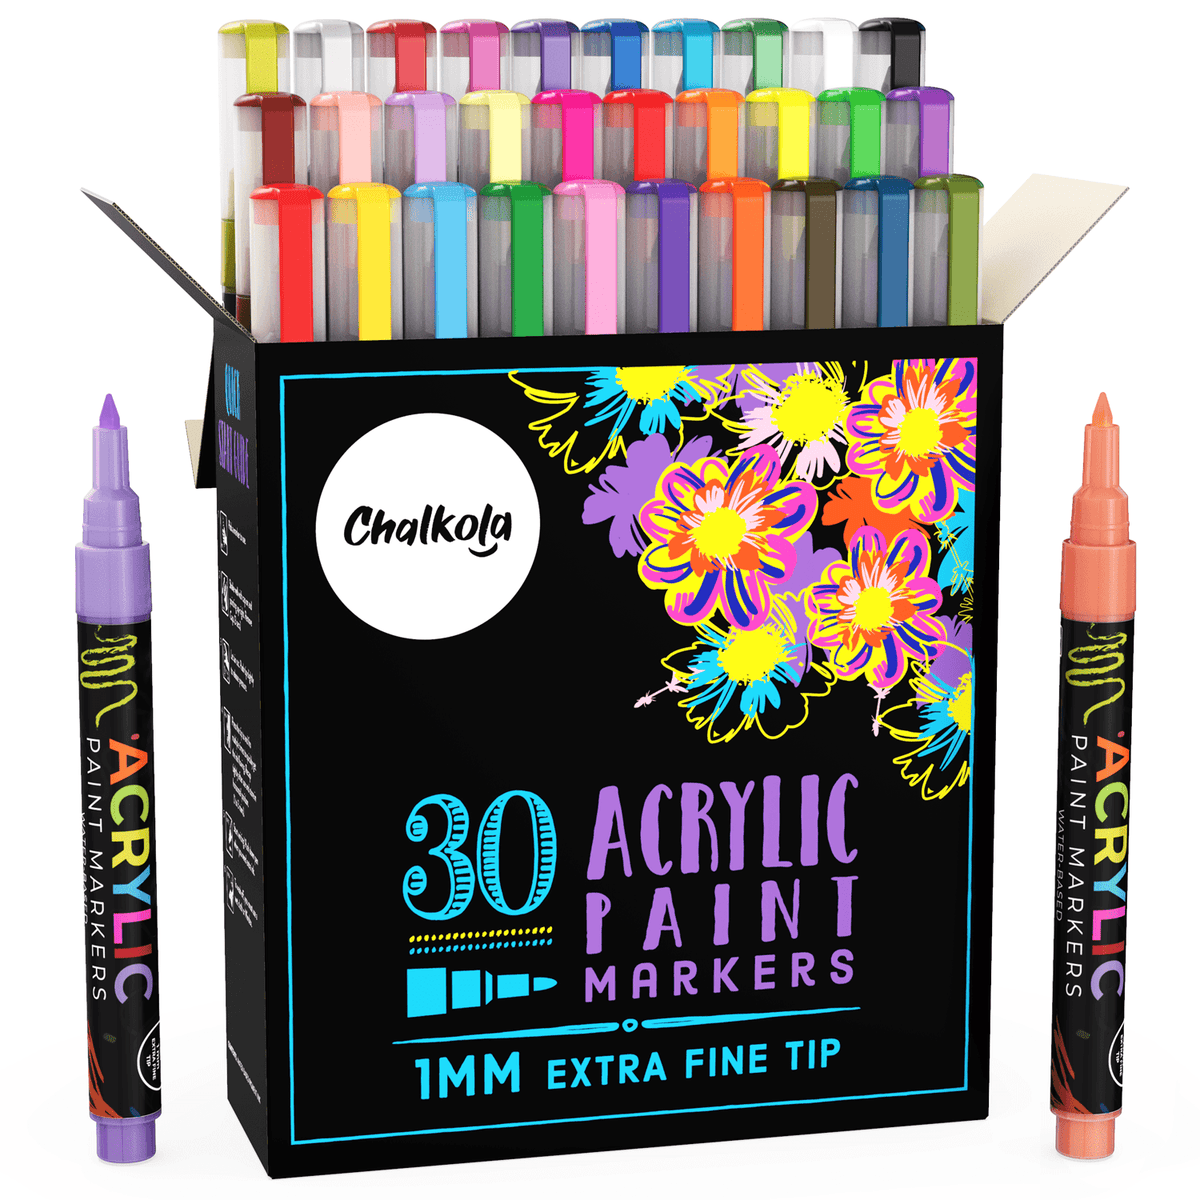 Acrylic Paint Marker Pens - Pack of 30 1mm Extra Fine